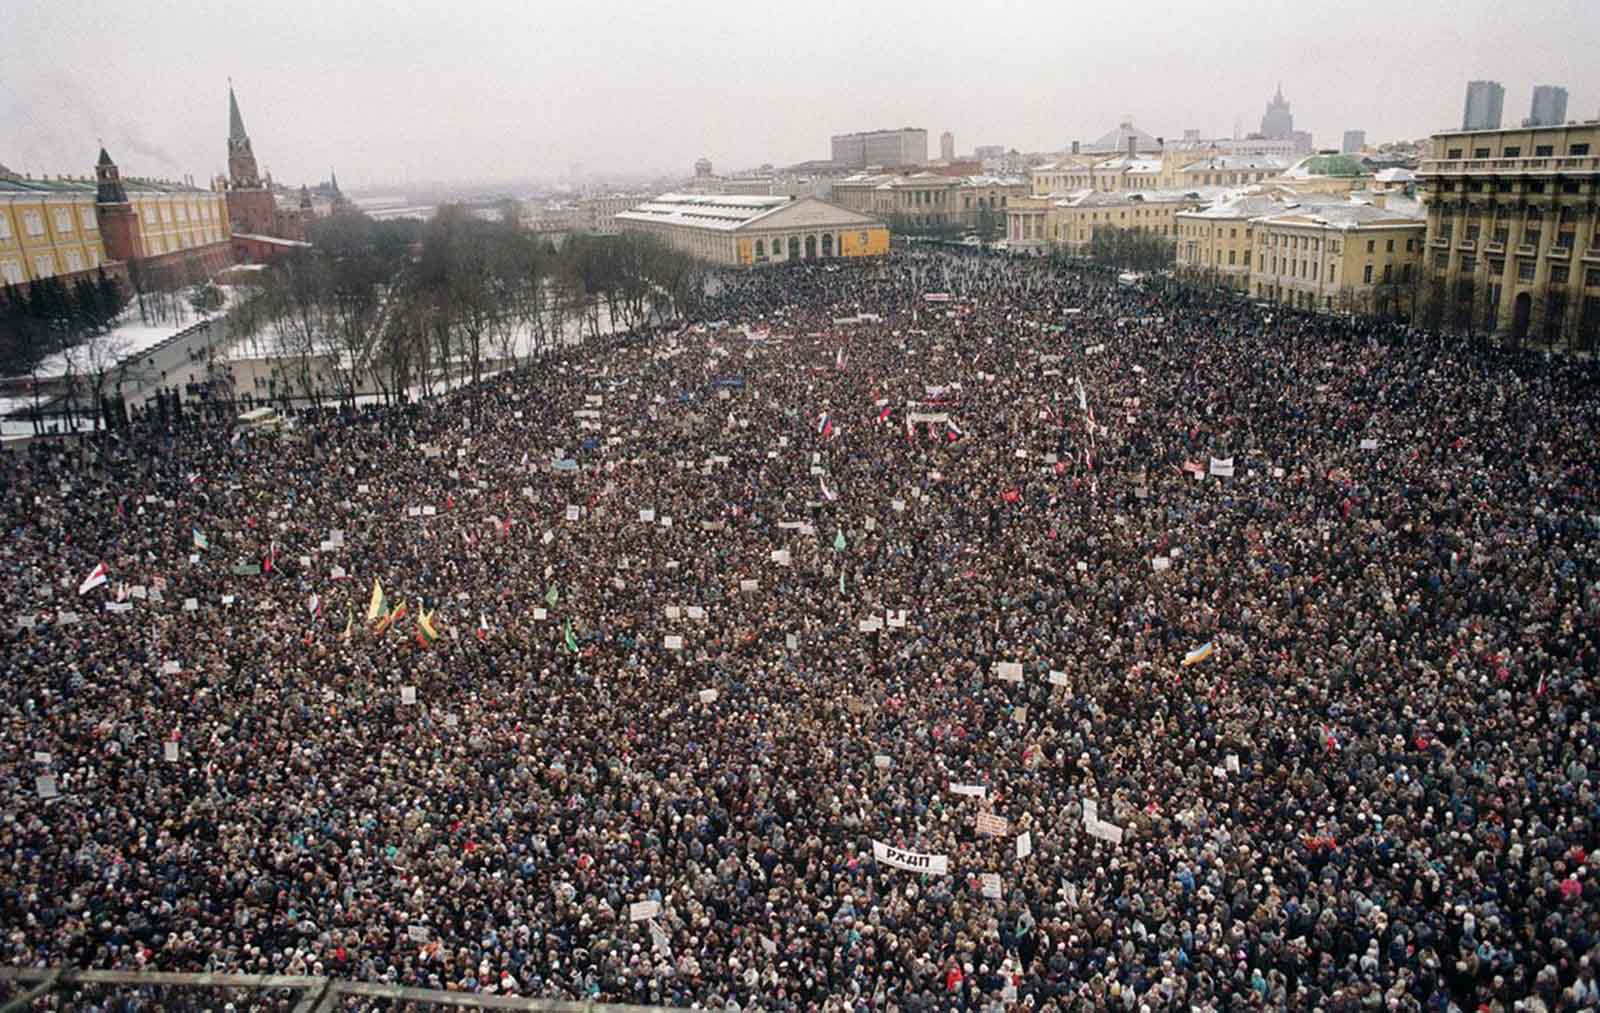 About 100,000 demonstrators march on the Kremlin in Moscow on January 20, 1991. Many called for the resignation of Soviet President Mikhail Gorbachev protesting against the Soviet army crackdown against the nationalist Lithuanian authorities. Lithuania had been the first Baltic Republic to proclaim its independence in March 1990.